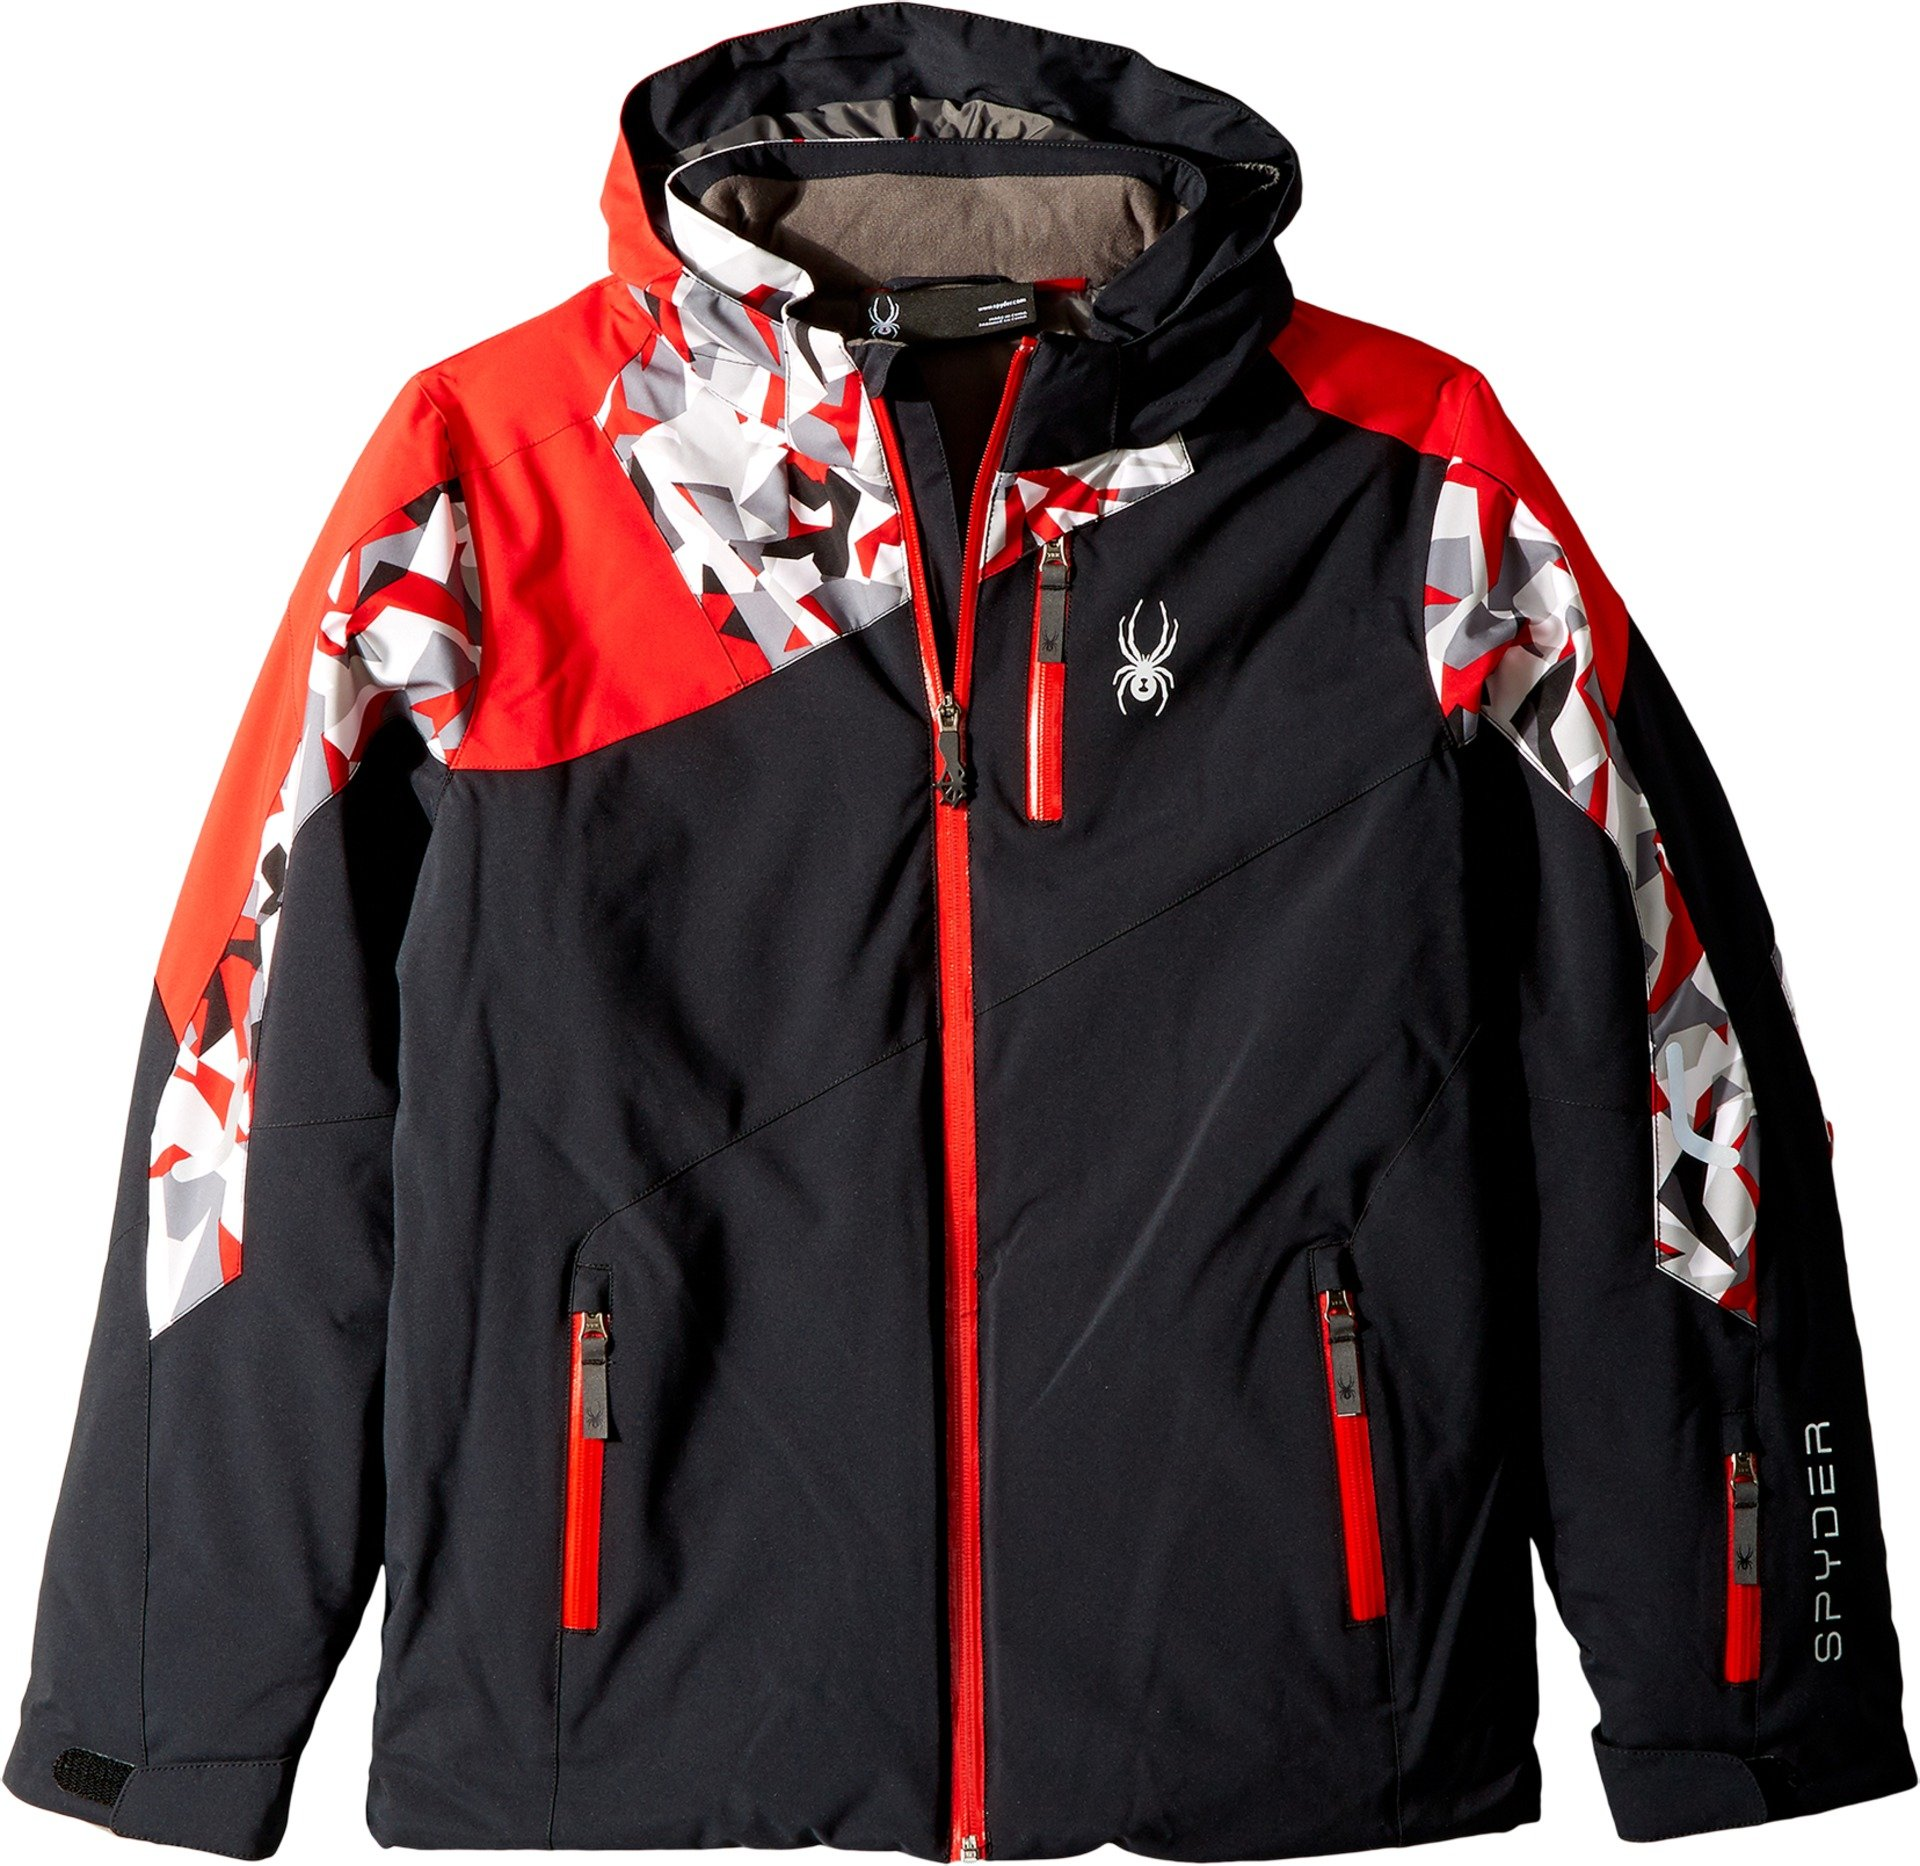 Spyder Kids  Boy's Avenger Jacket (Big Kids) Black/Mini Camo White/Red 12 by Spyder